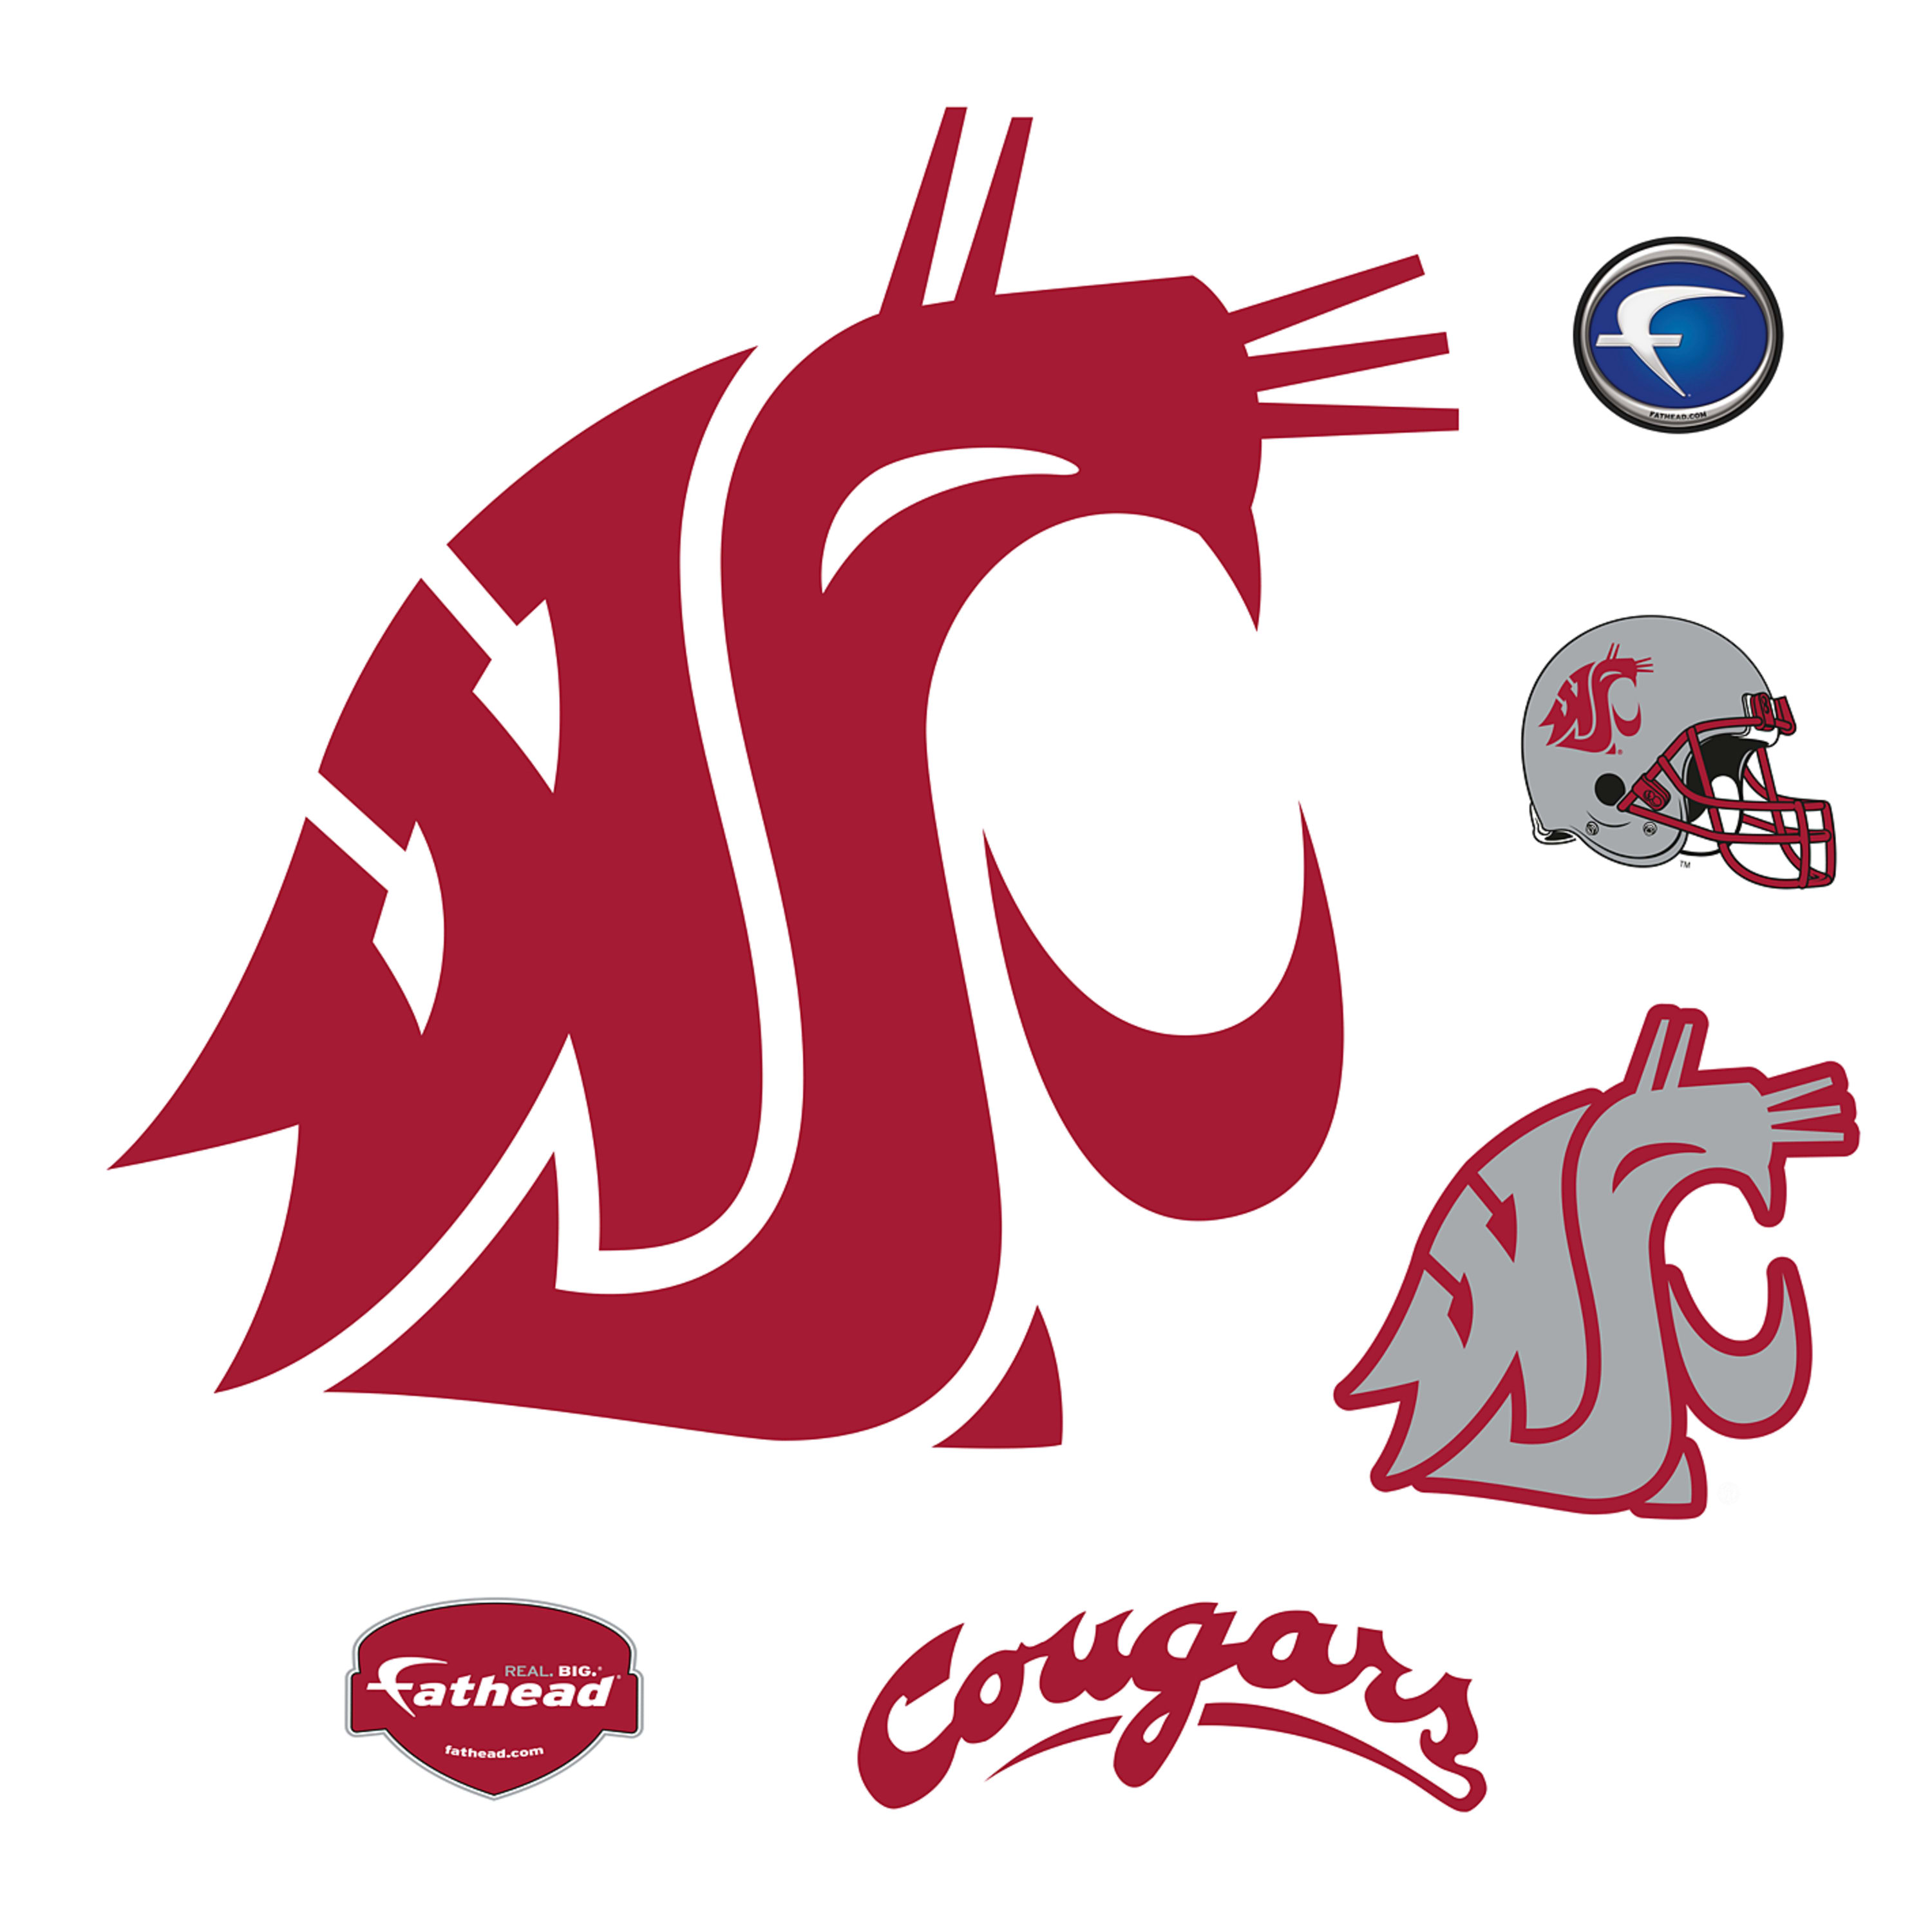 Washington state cougars clipart banner royalty free stock Washington State Cougars: Logo - Giant Officially Licensed Removable Wall  Decal banner royalty free stock